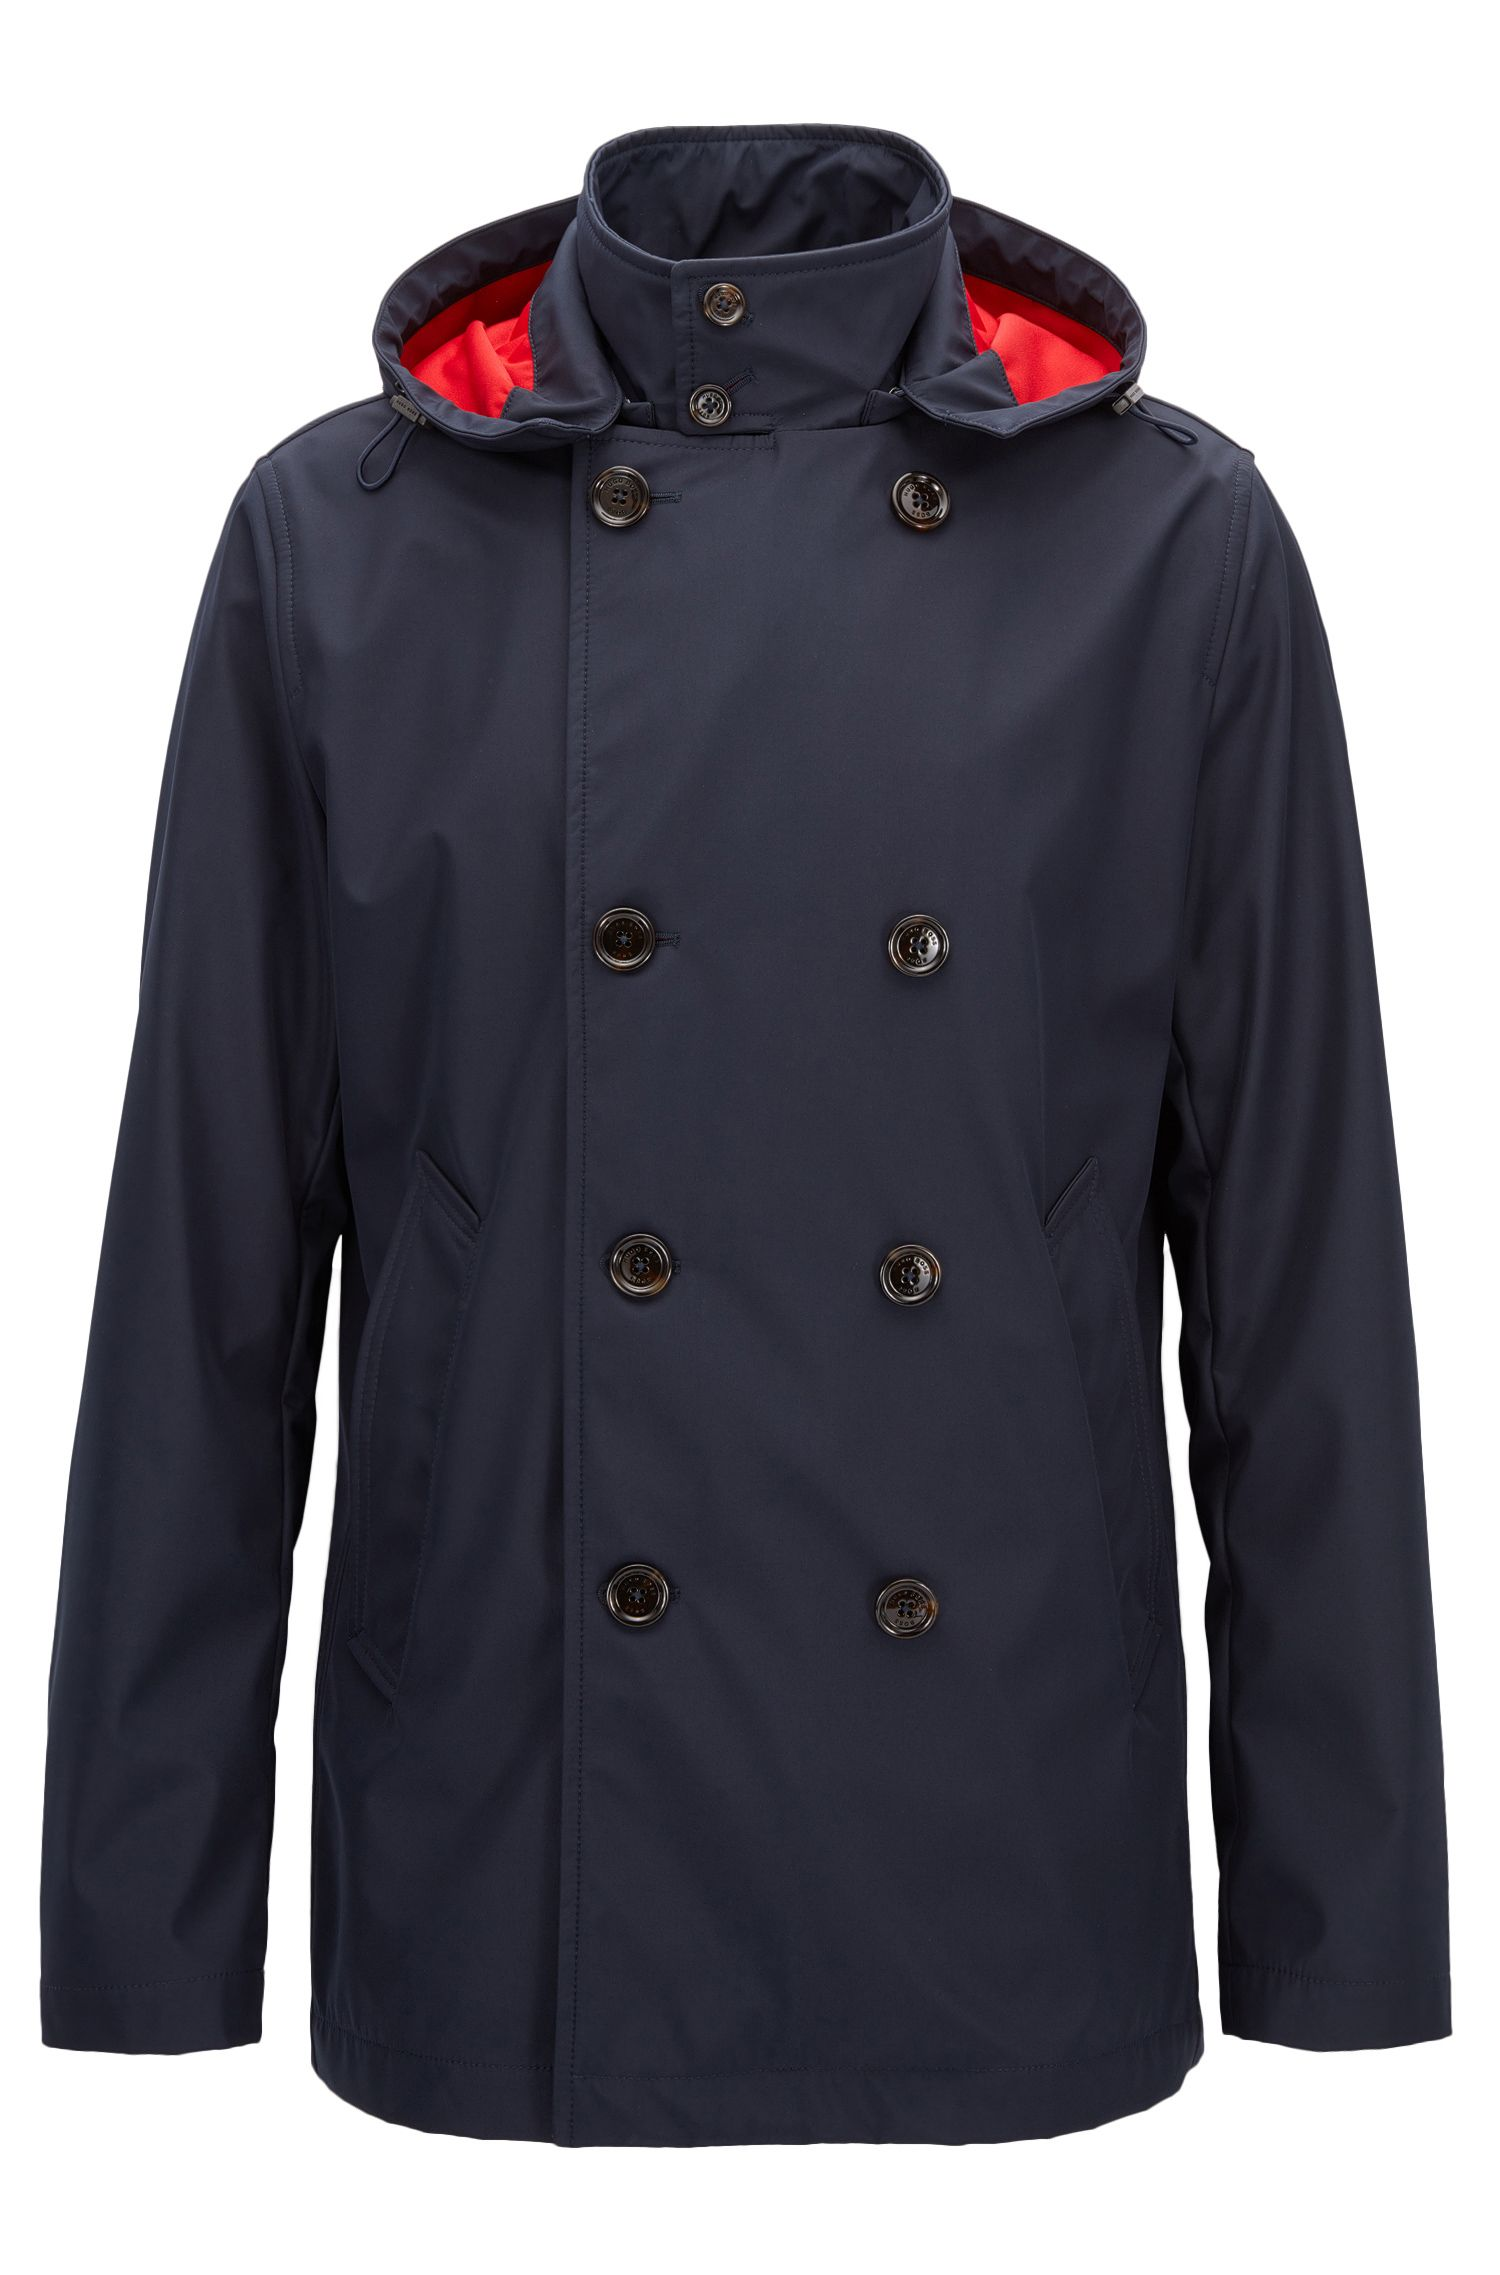 Water-Resistant Double-Breasted Jacket | Callan